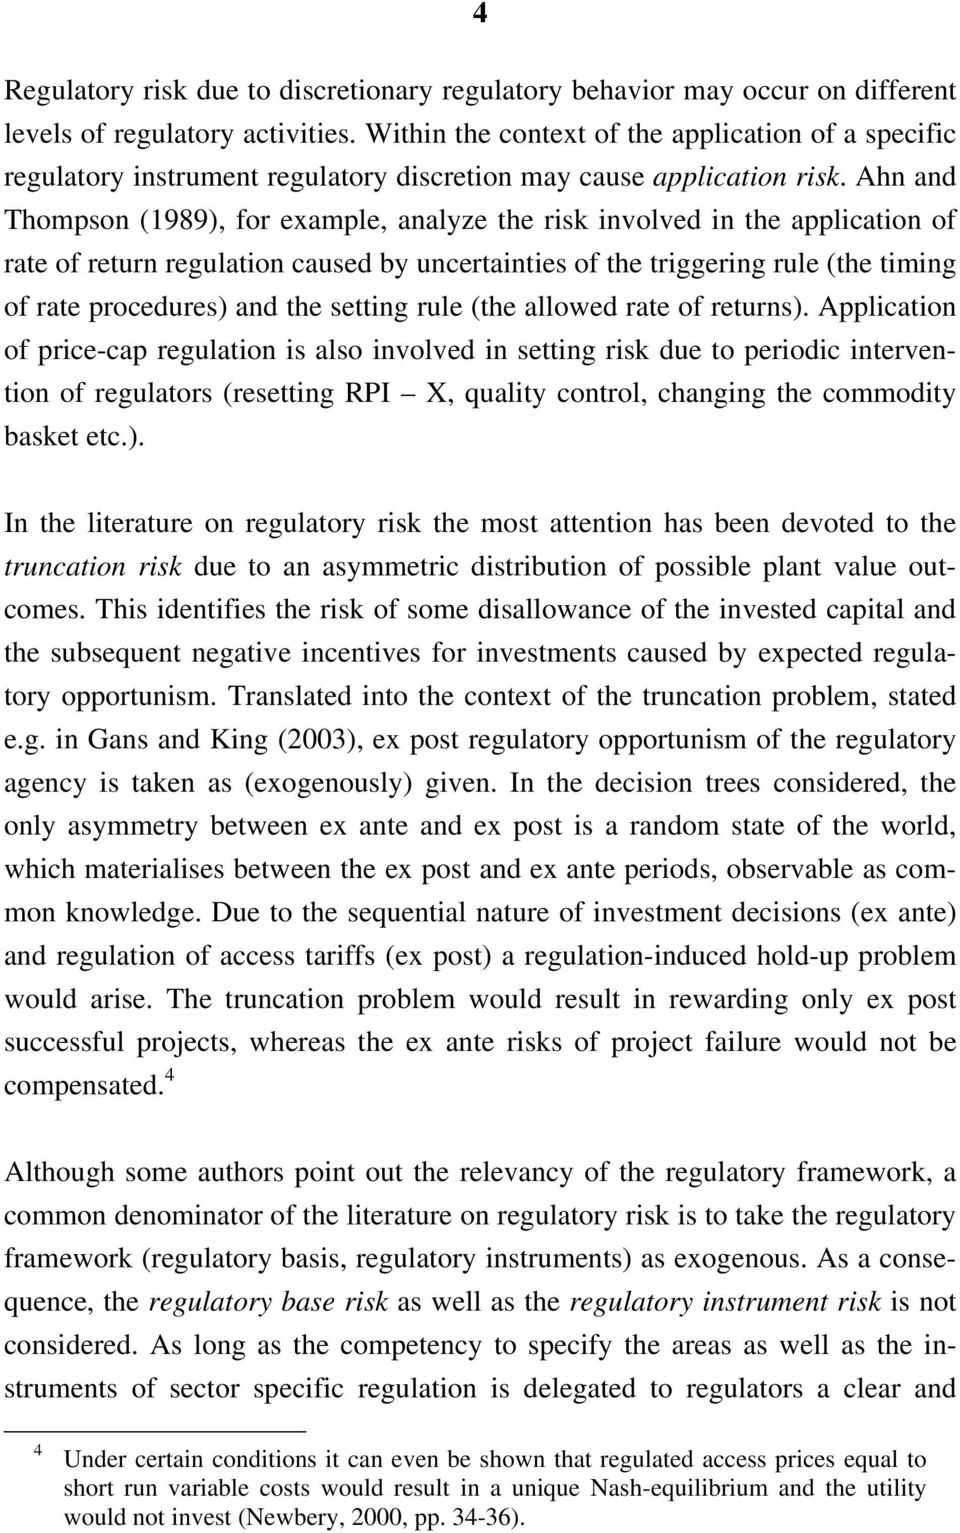 Ahn and Thompson (1989), for example, analyze the risk involved in the application of rate of return regulation caused by uncertainties of the triggering rule (the timing of rate procedures) and the